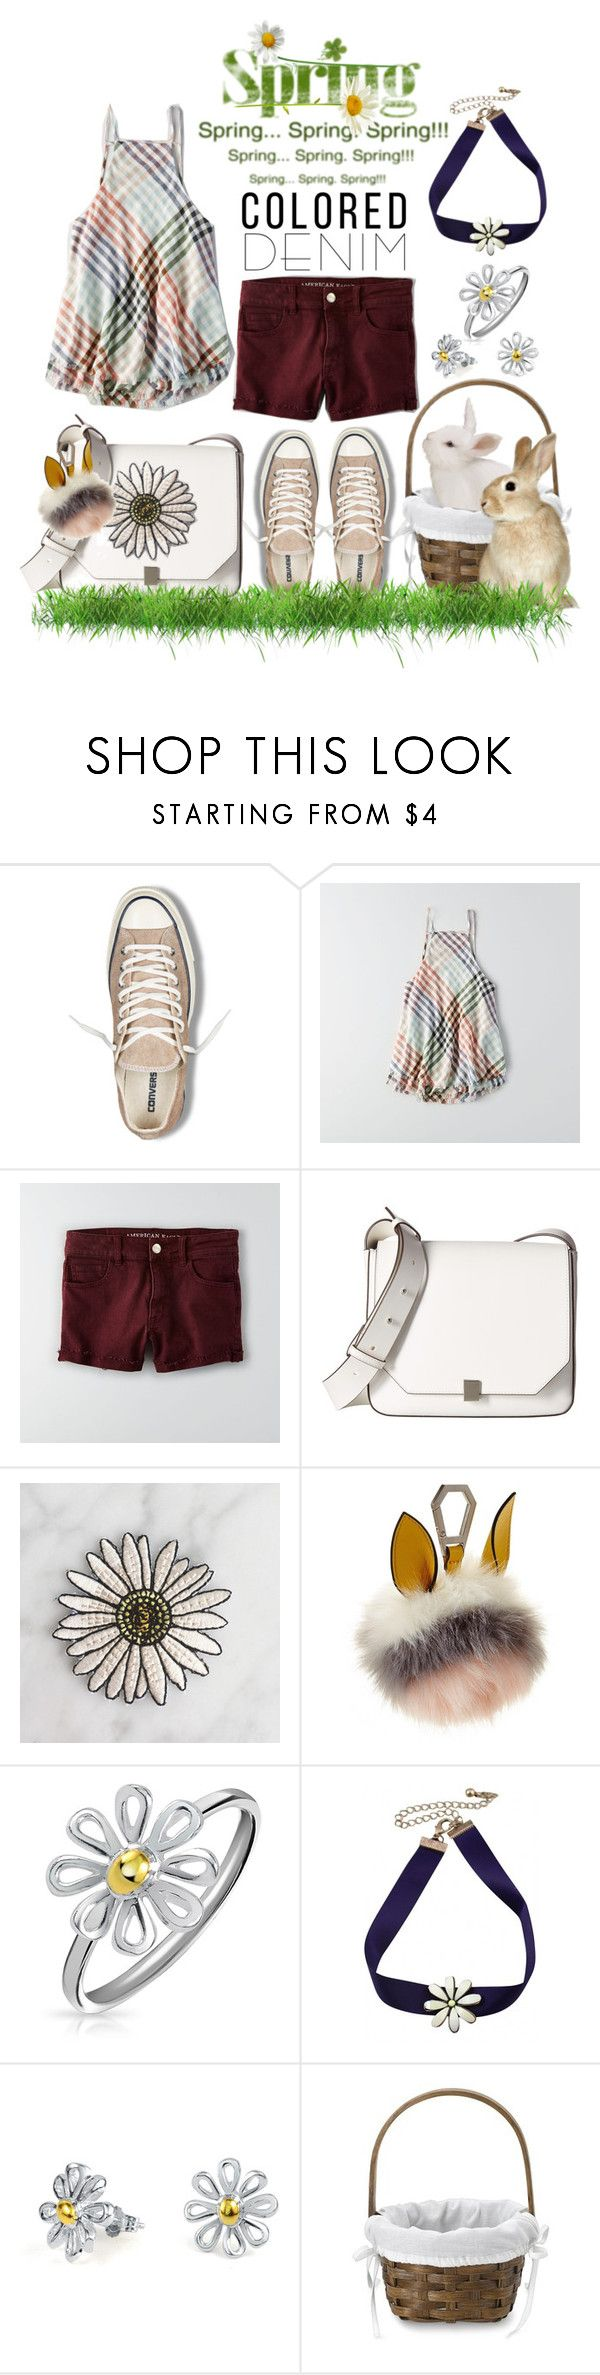 """""""Spring Trend: Colored Denim"""" by mia-christine ❤ liked on Polyvore featuring Converse, American Eagle Outfitters, French Connection, Kendall + Kylie, Bling Jewelry, Williams-Sonoma and coloredjeans"""